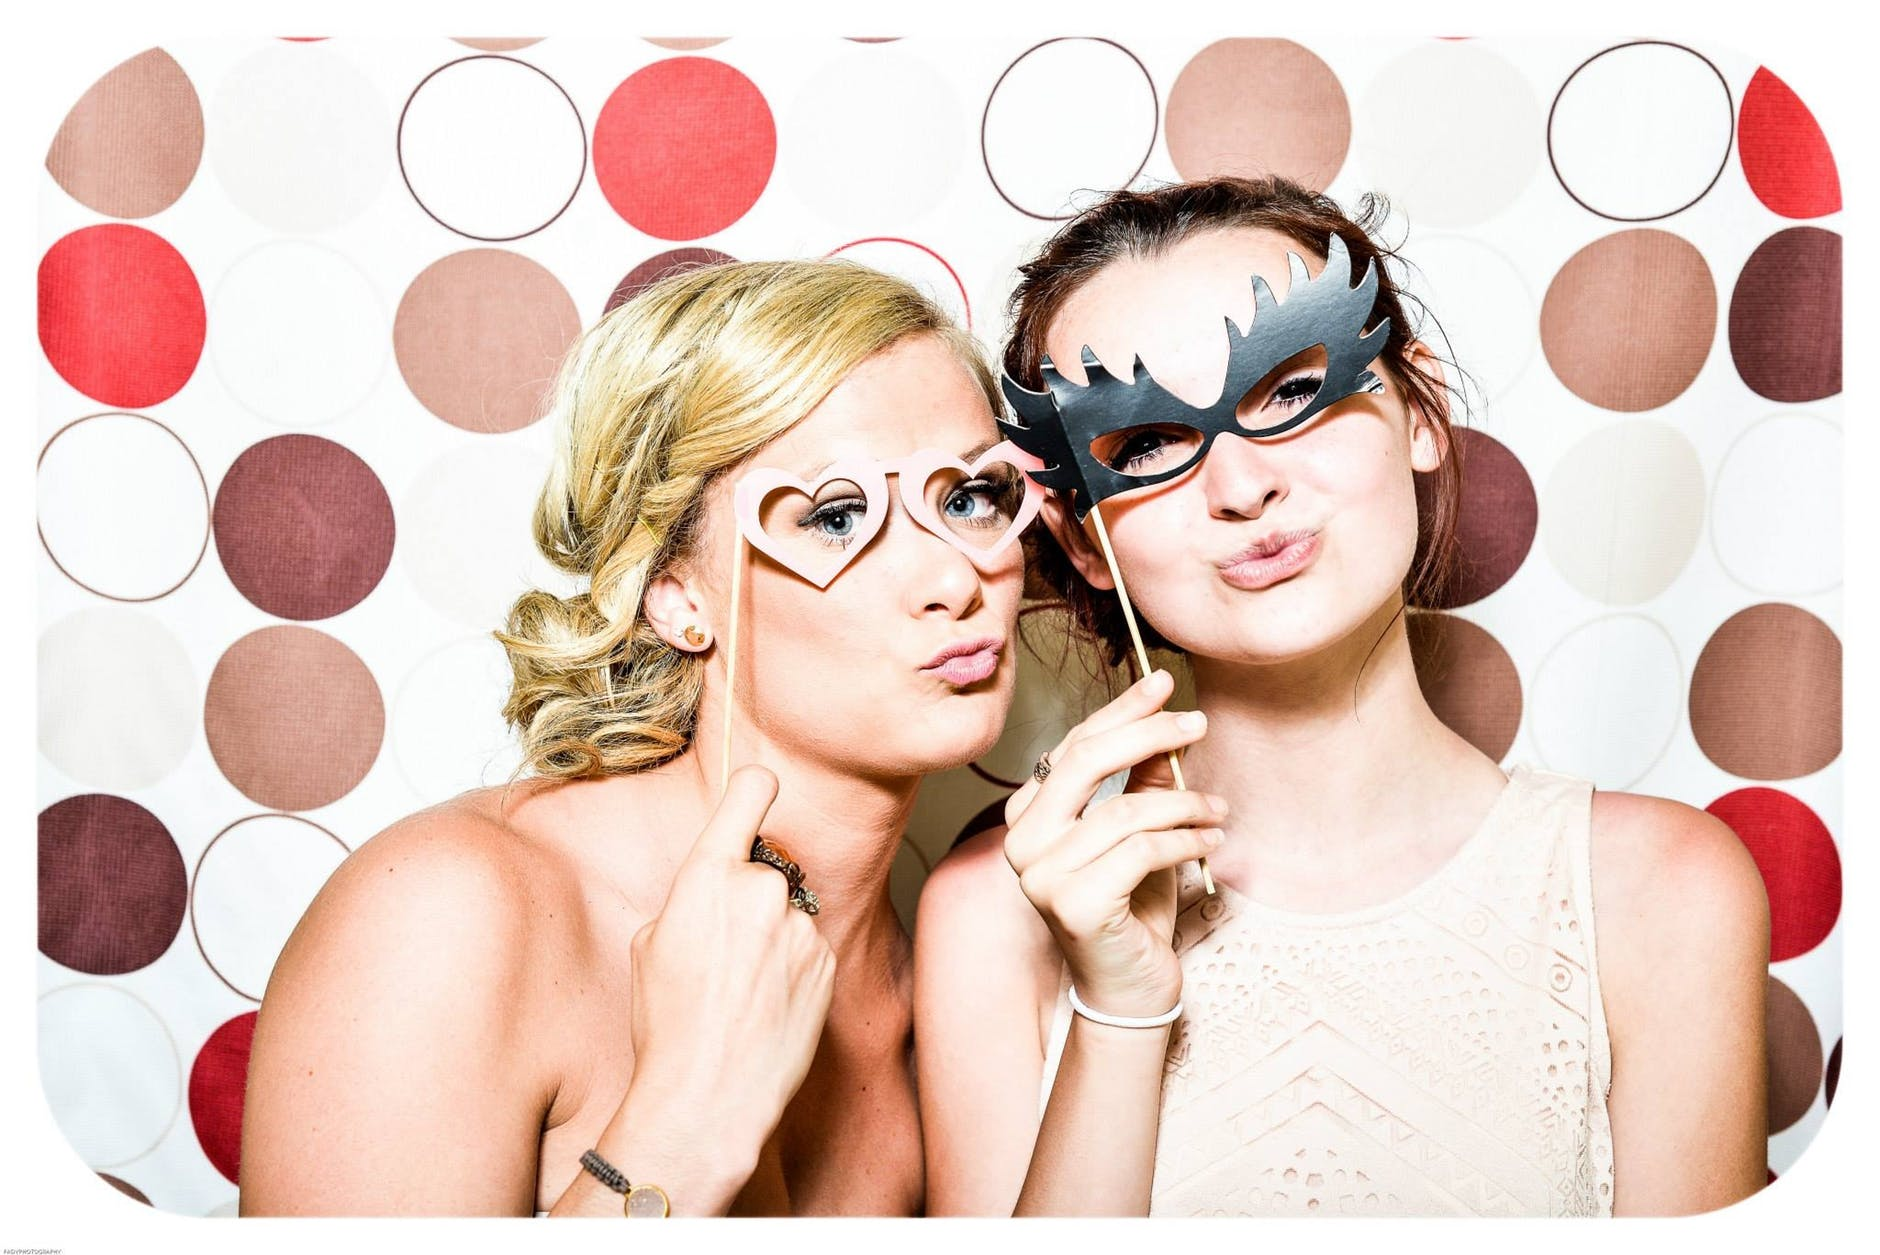 How to Find the Best Supplies for Your Friend's Hens Night